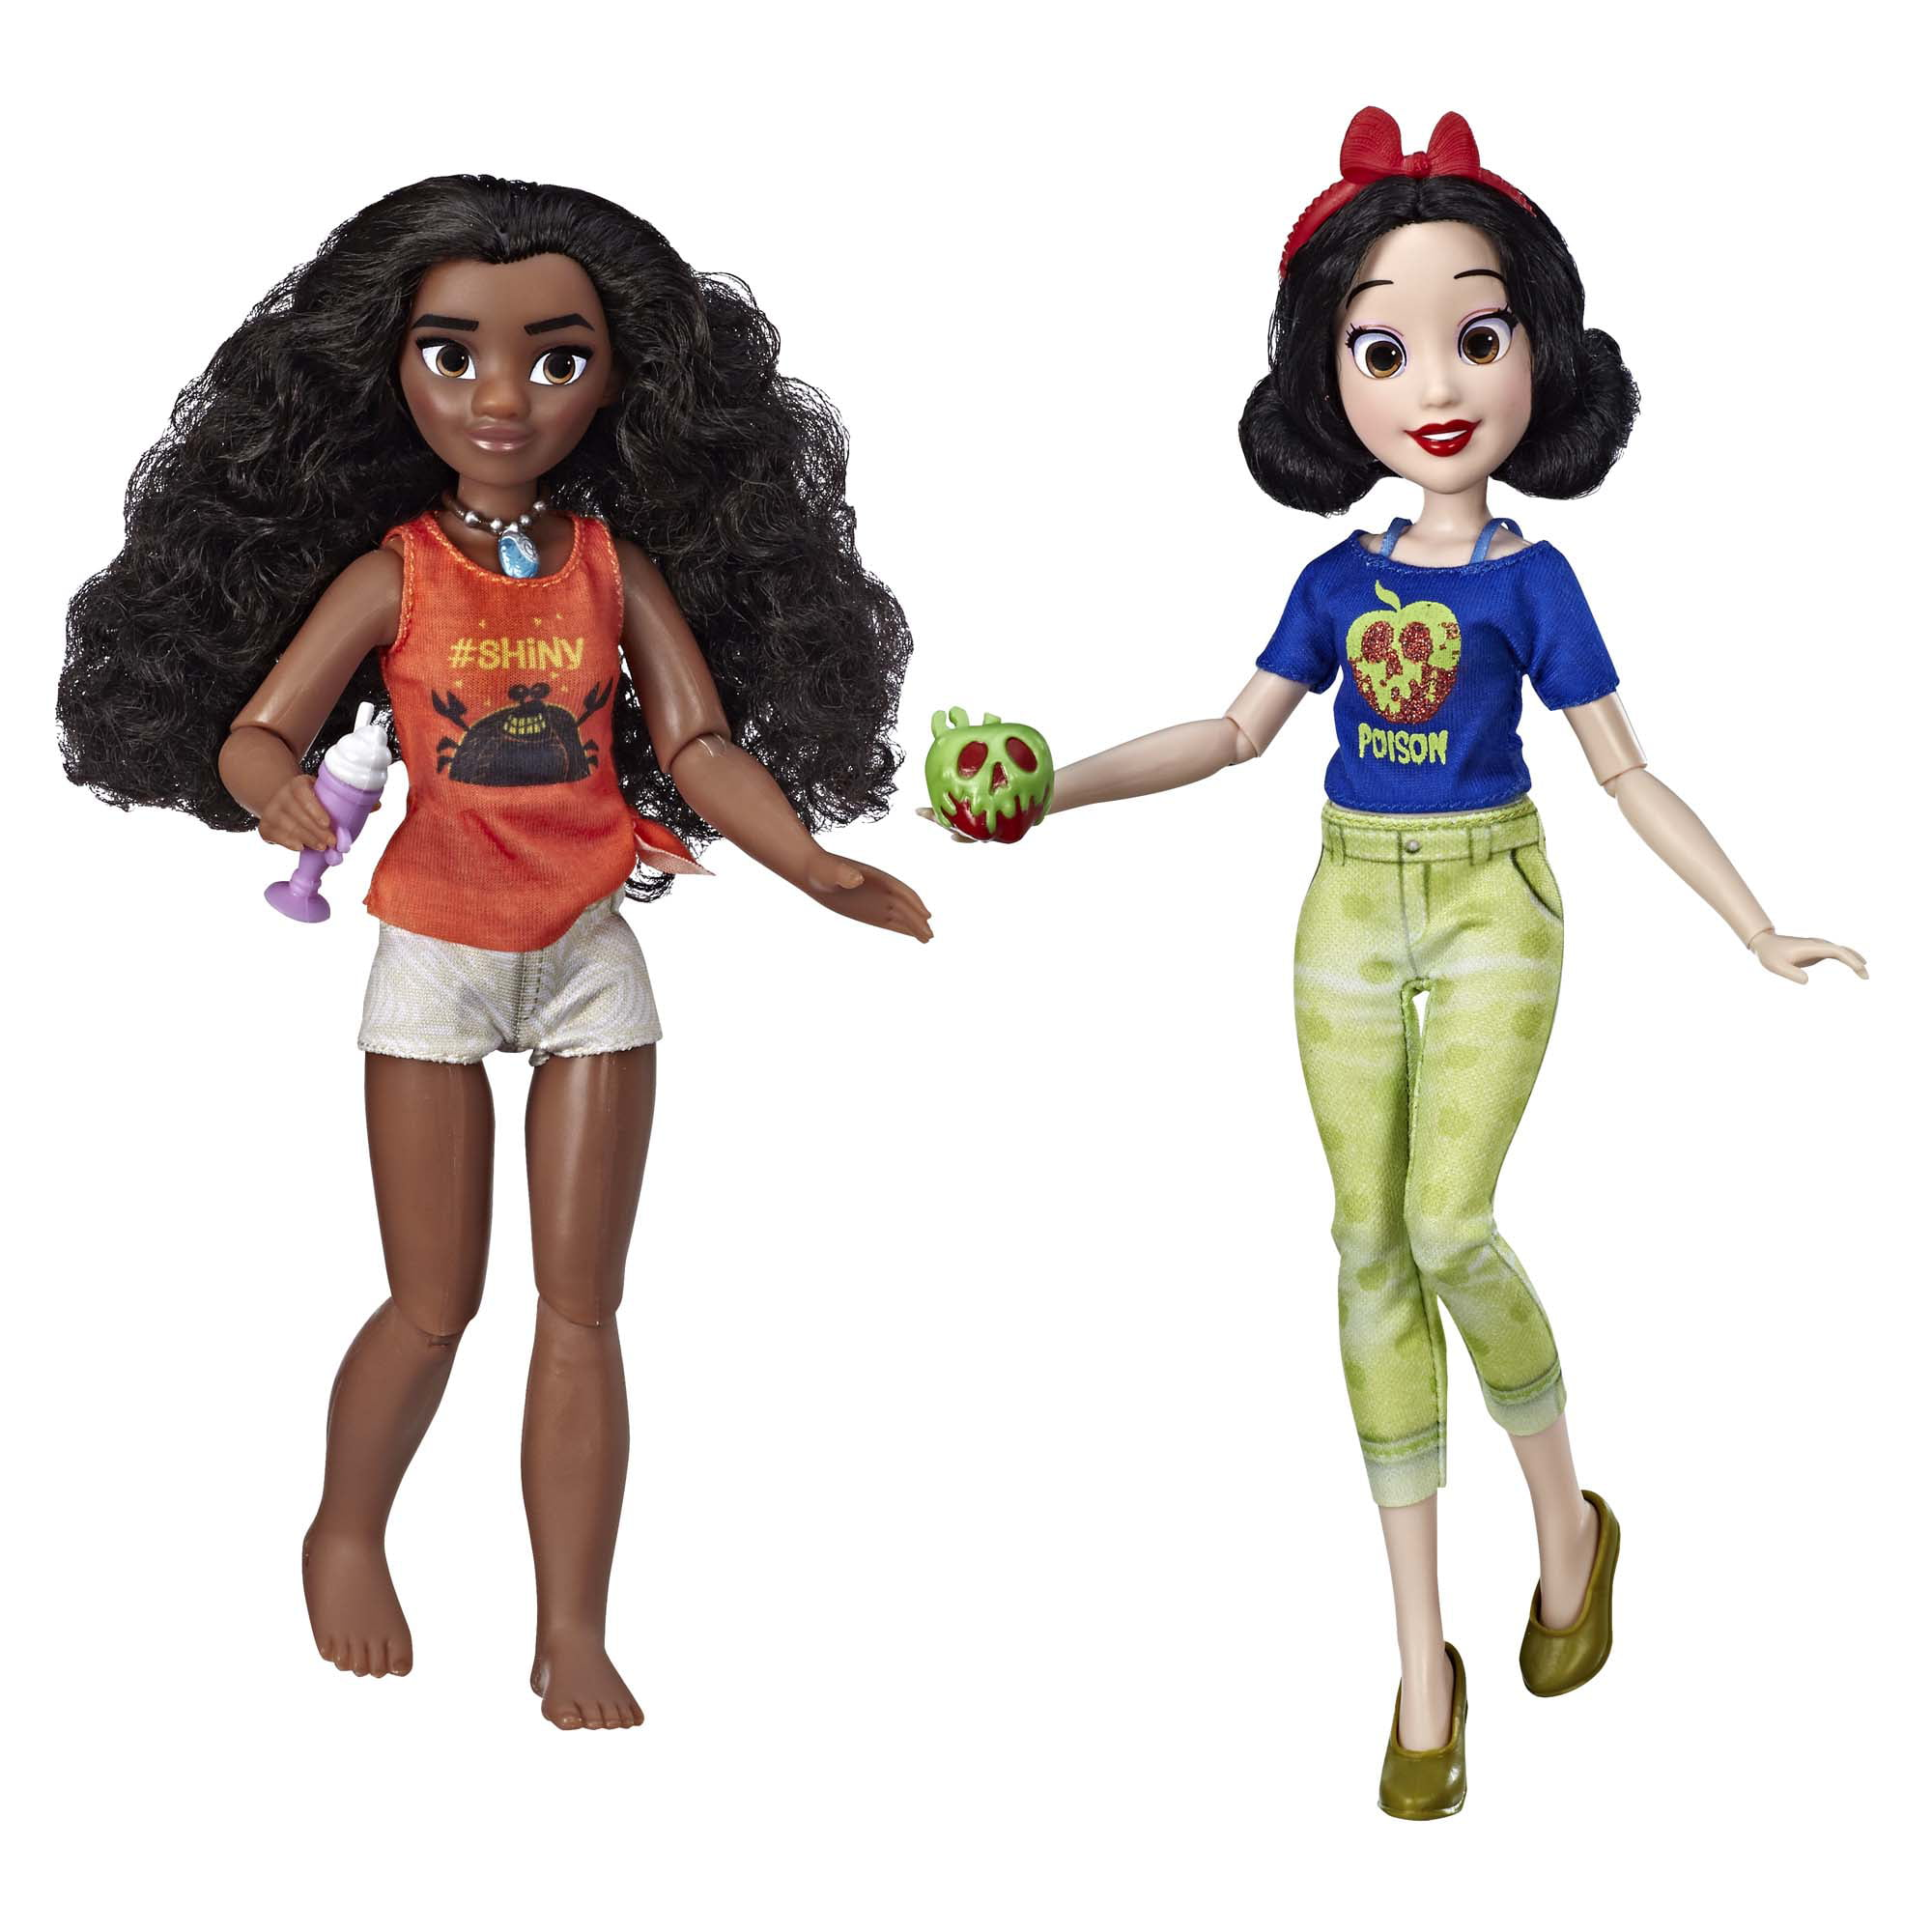 Disney Princess Ralph Breaks The Internet Movie Moana And Snow White Walmart Com Walmart Com